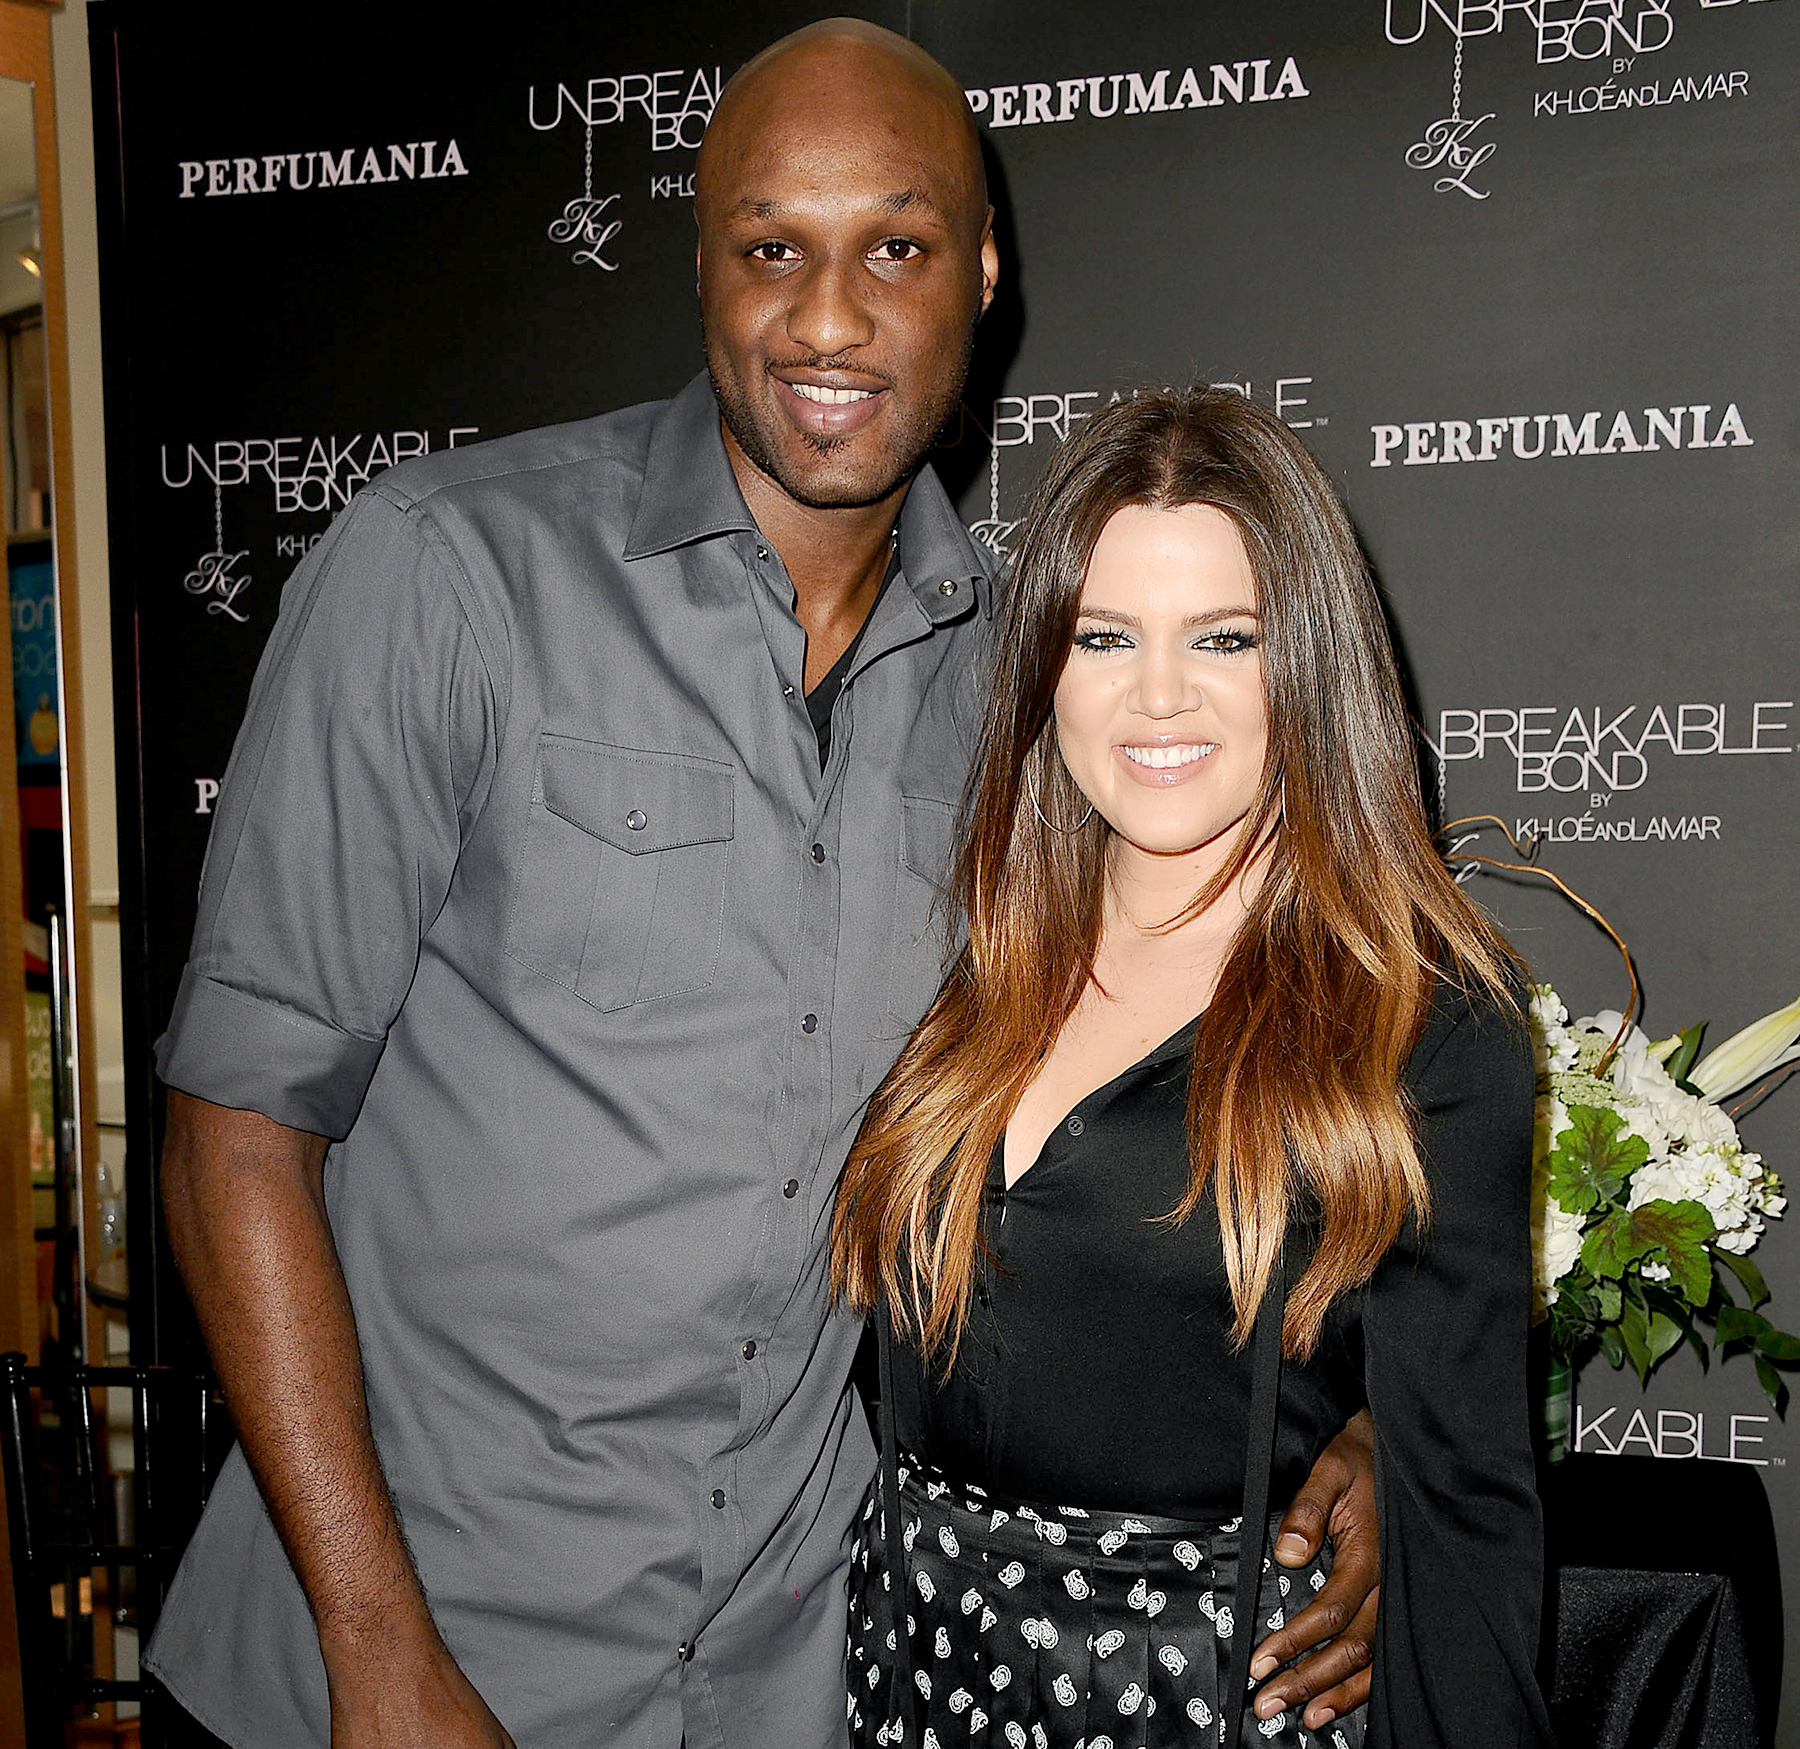 Lamar Odom and Khloe Kardashian make a personal appearance for